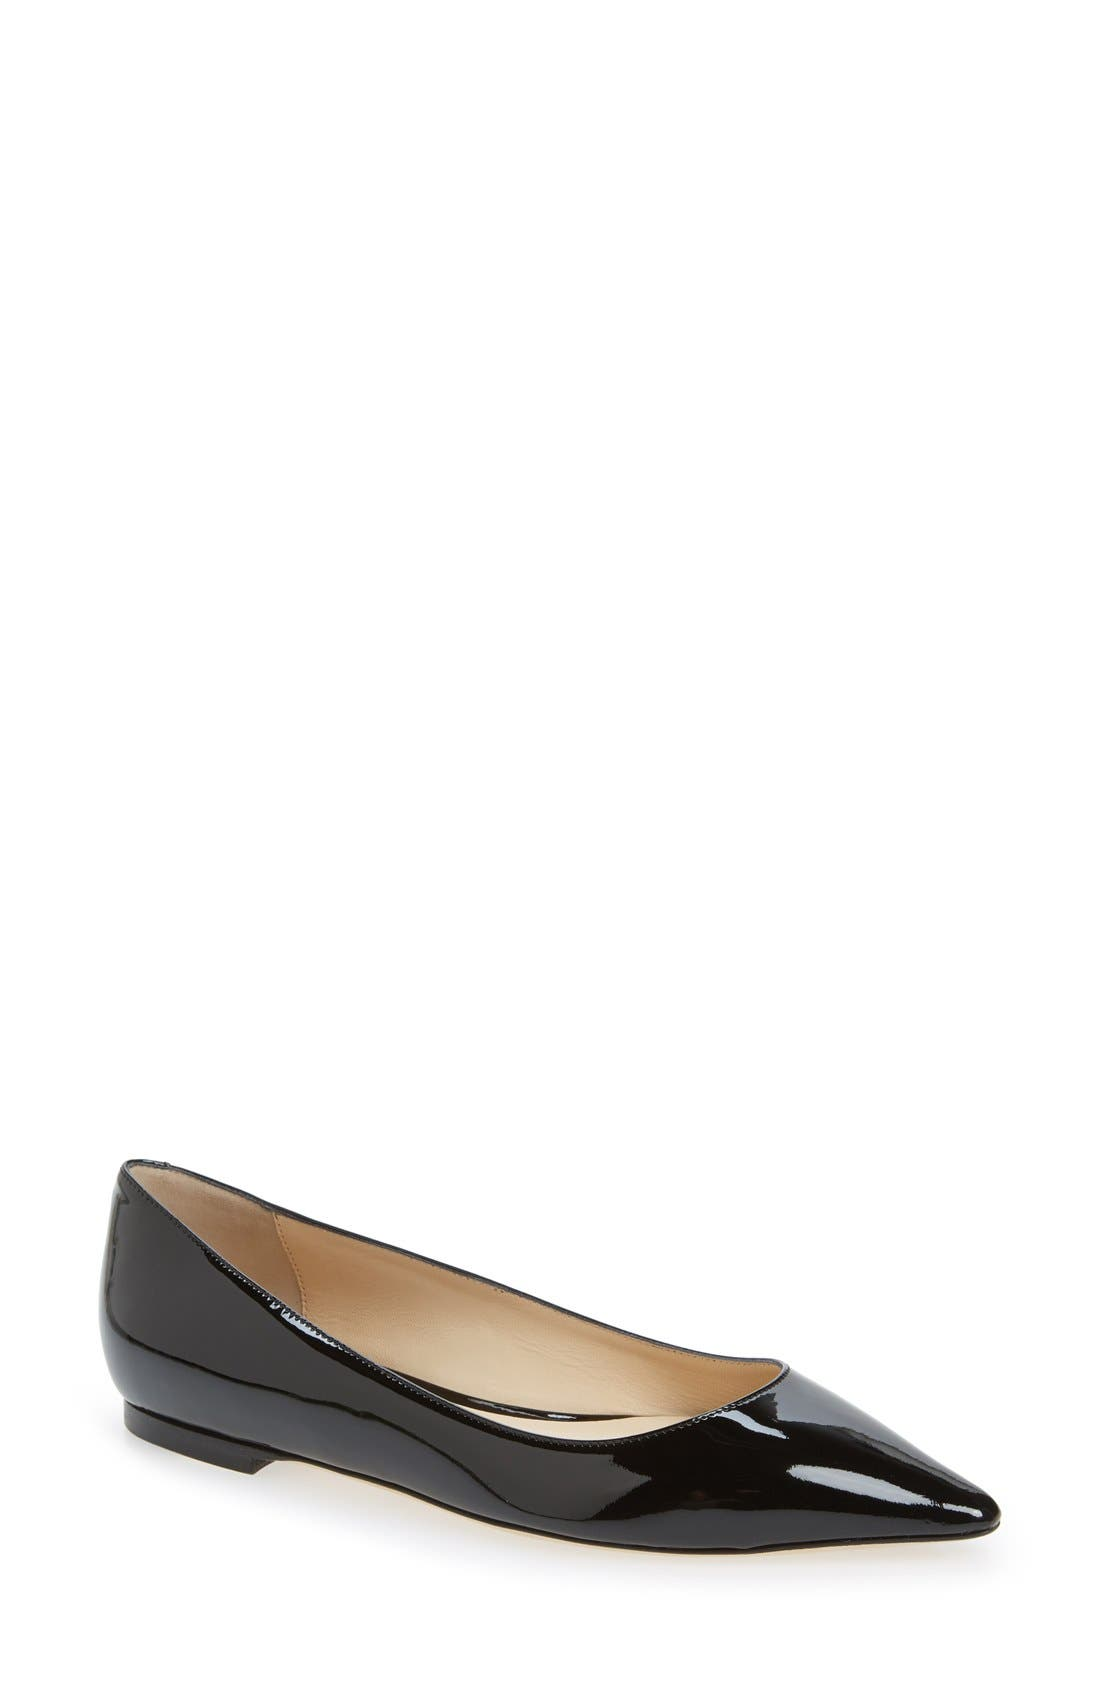 'Romy' Pointy Toe Flat,                         Main,                         color,